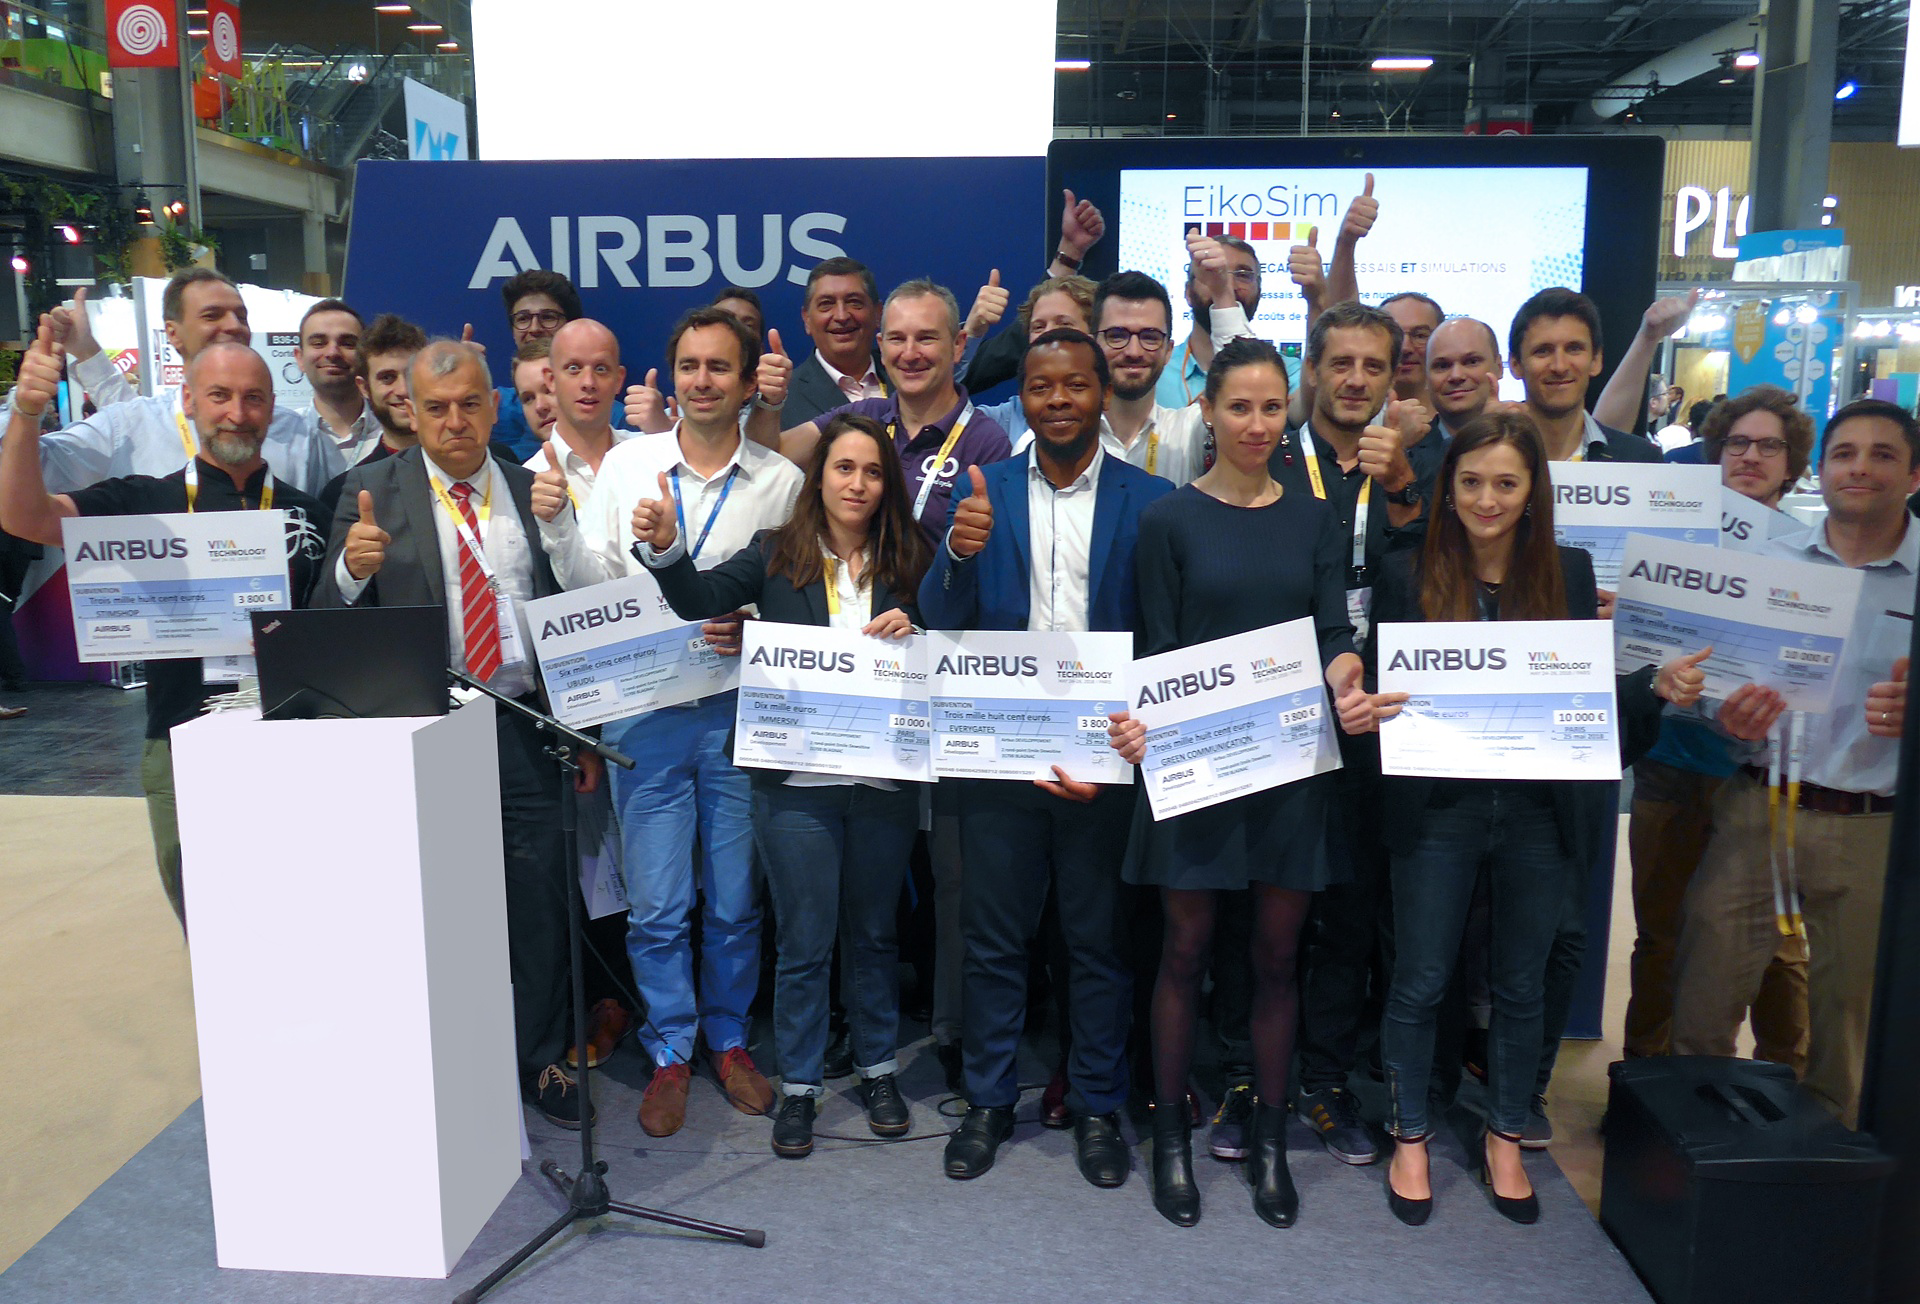 Representatives from start-ups receiving Airbus grants gathered at the 2018 VivaTech convention in Paris to mark their achievement.